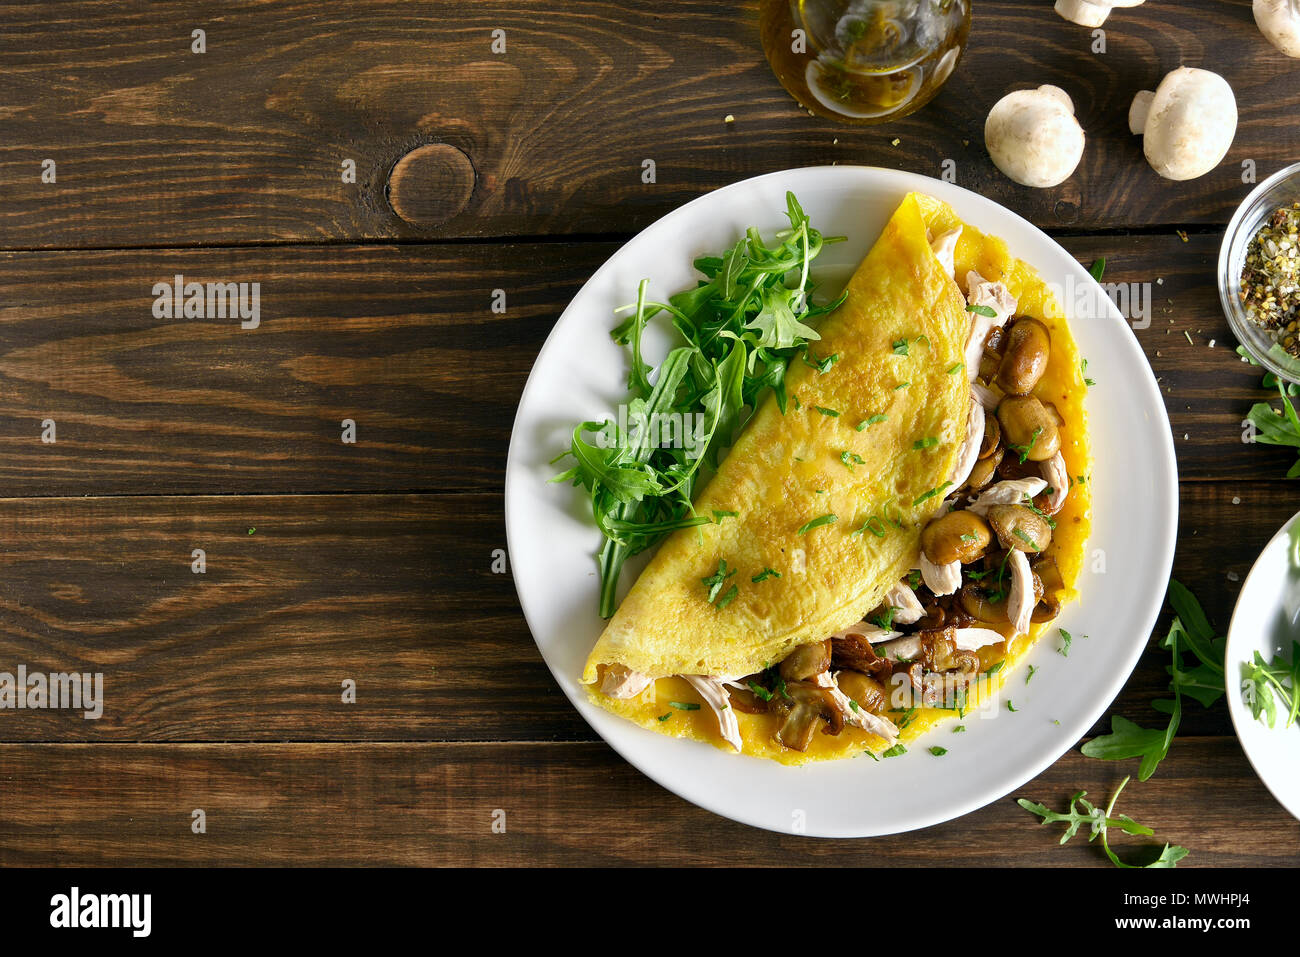 Omelette stuffed with mushrooms, pieces of chicken meat, greens on wooden background with copy space. Top view, flat lay - Stock Image